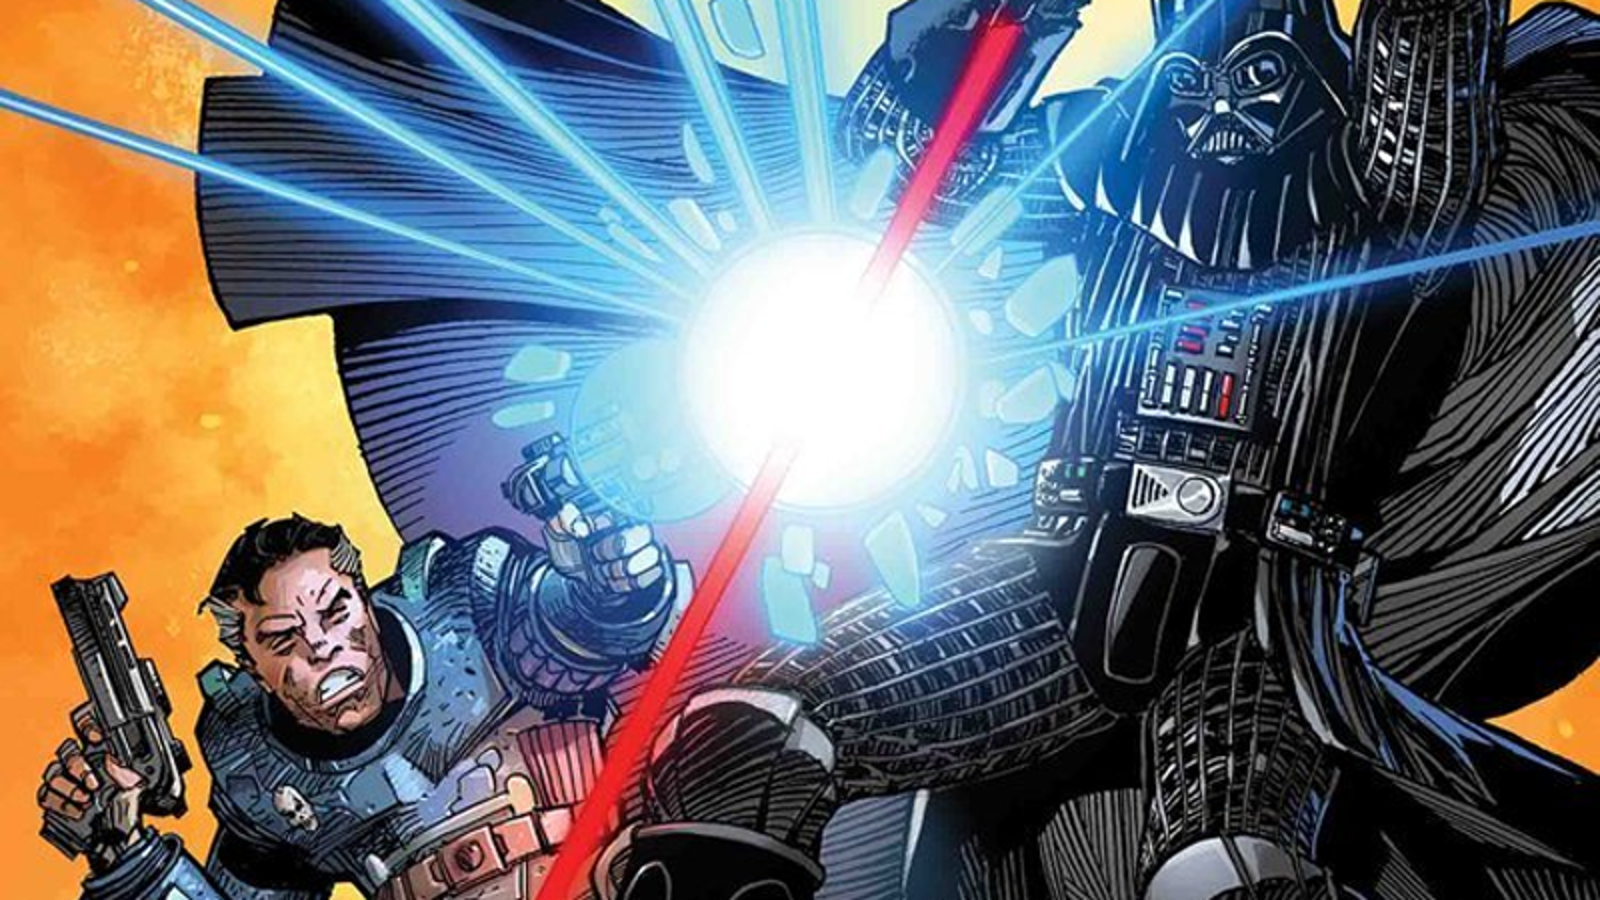 Marvel Resurrecting Its Classic Star Wars Comic For One Issue